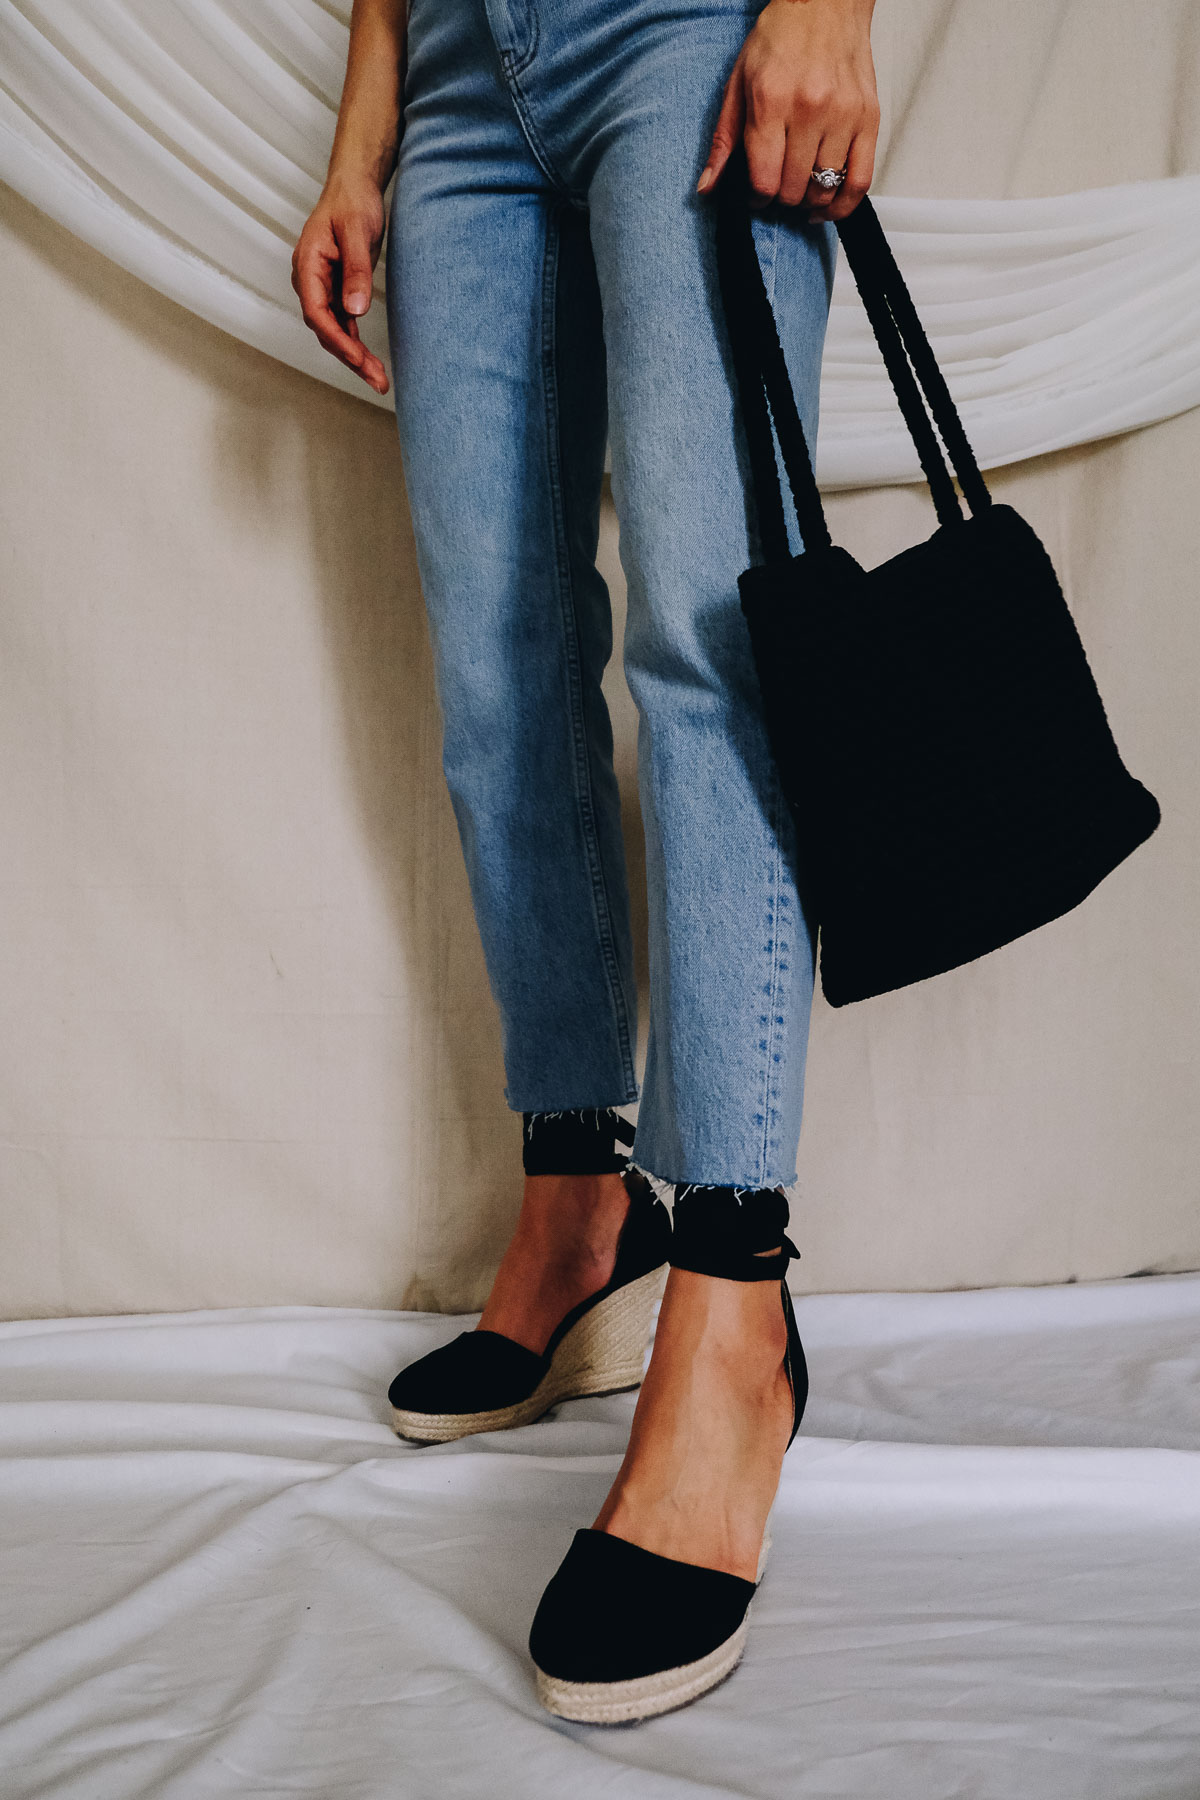 Wondering what spring staples you need for your spring outfits? Check out this post on what you need this season and this espadrille outfit is one of them!